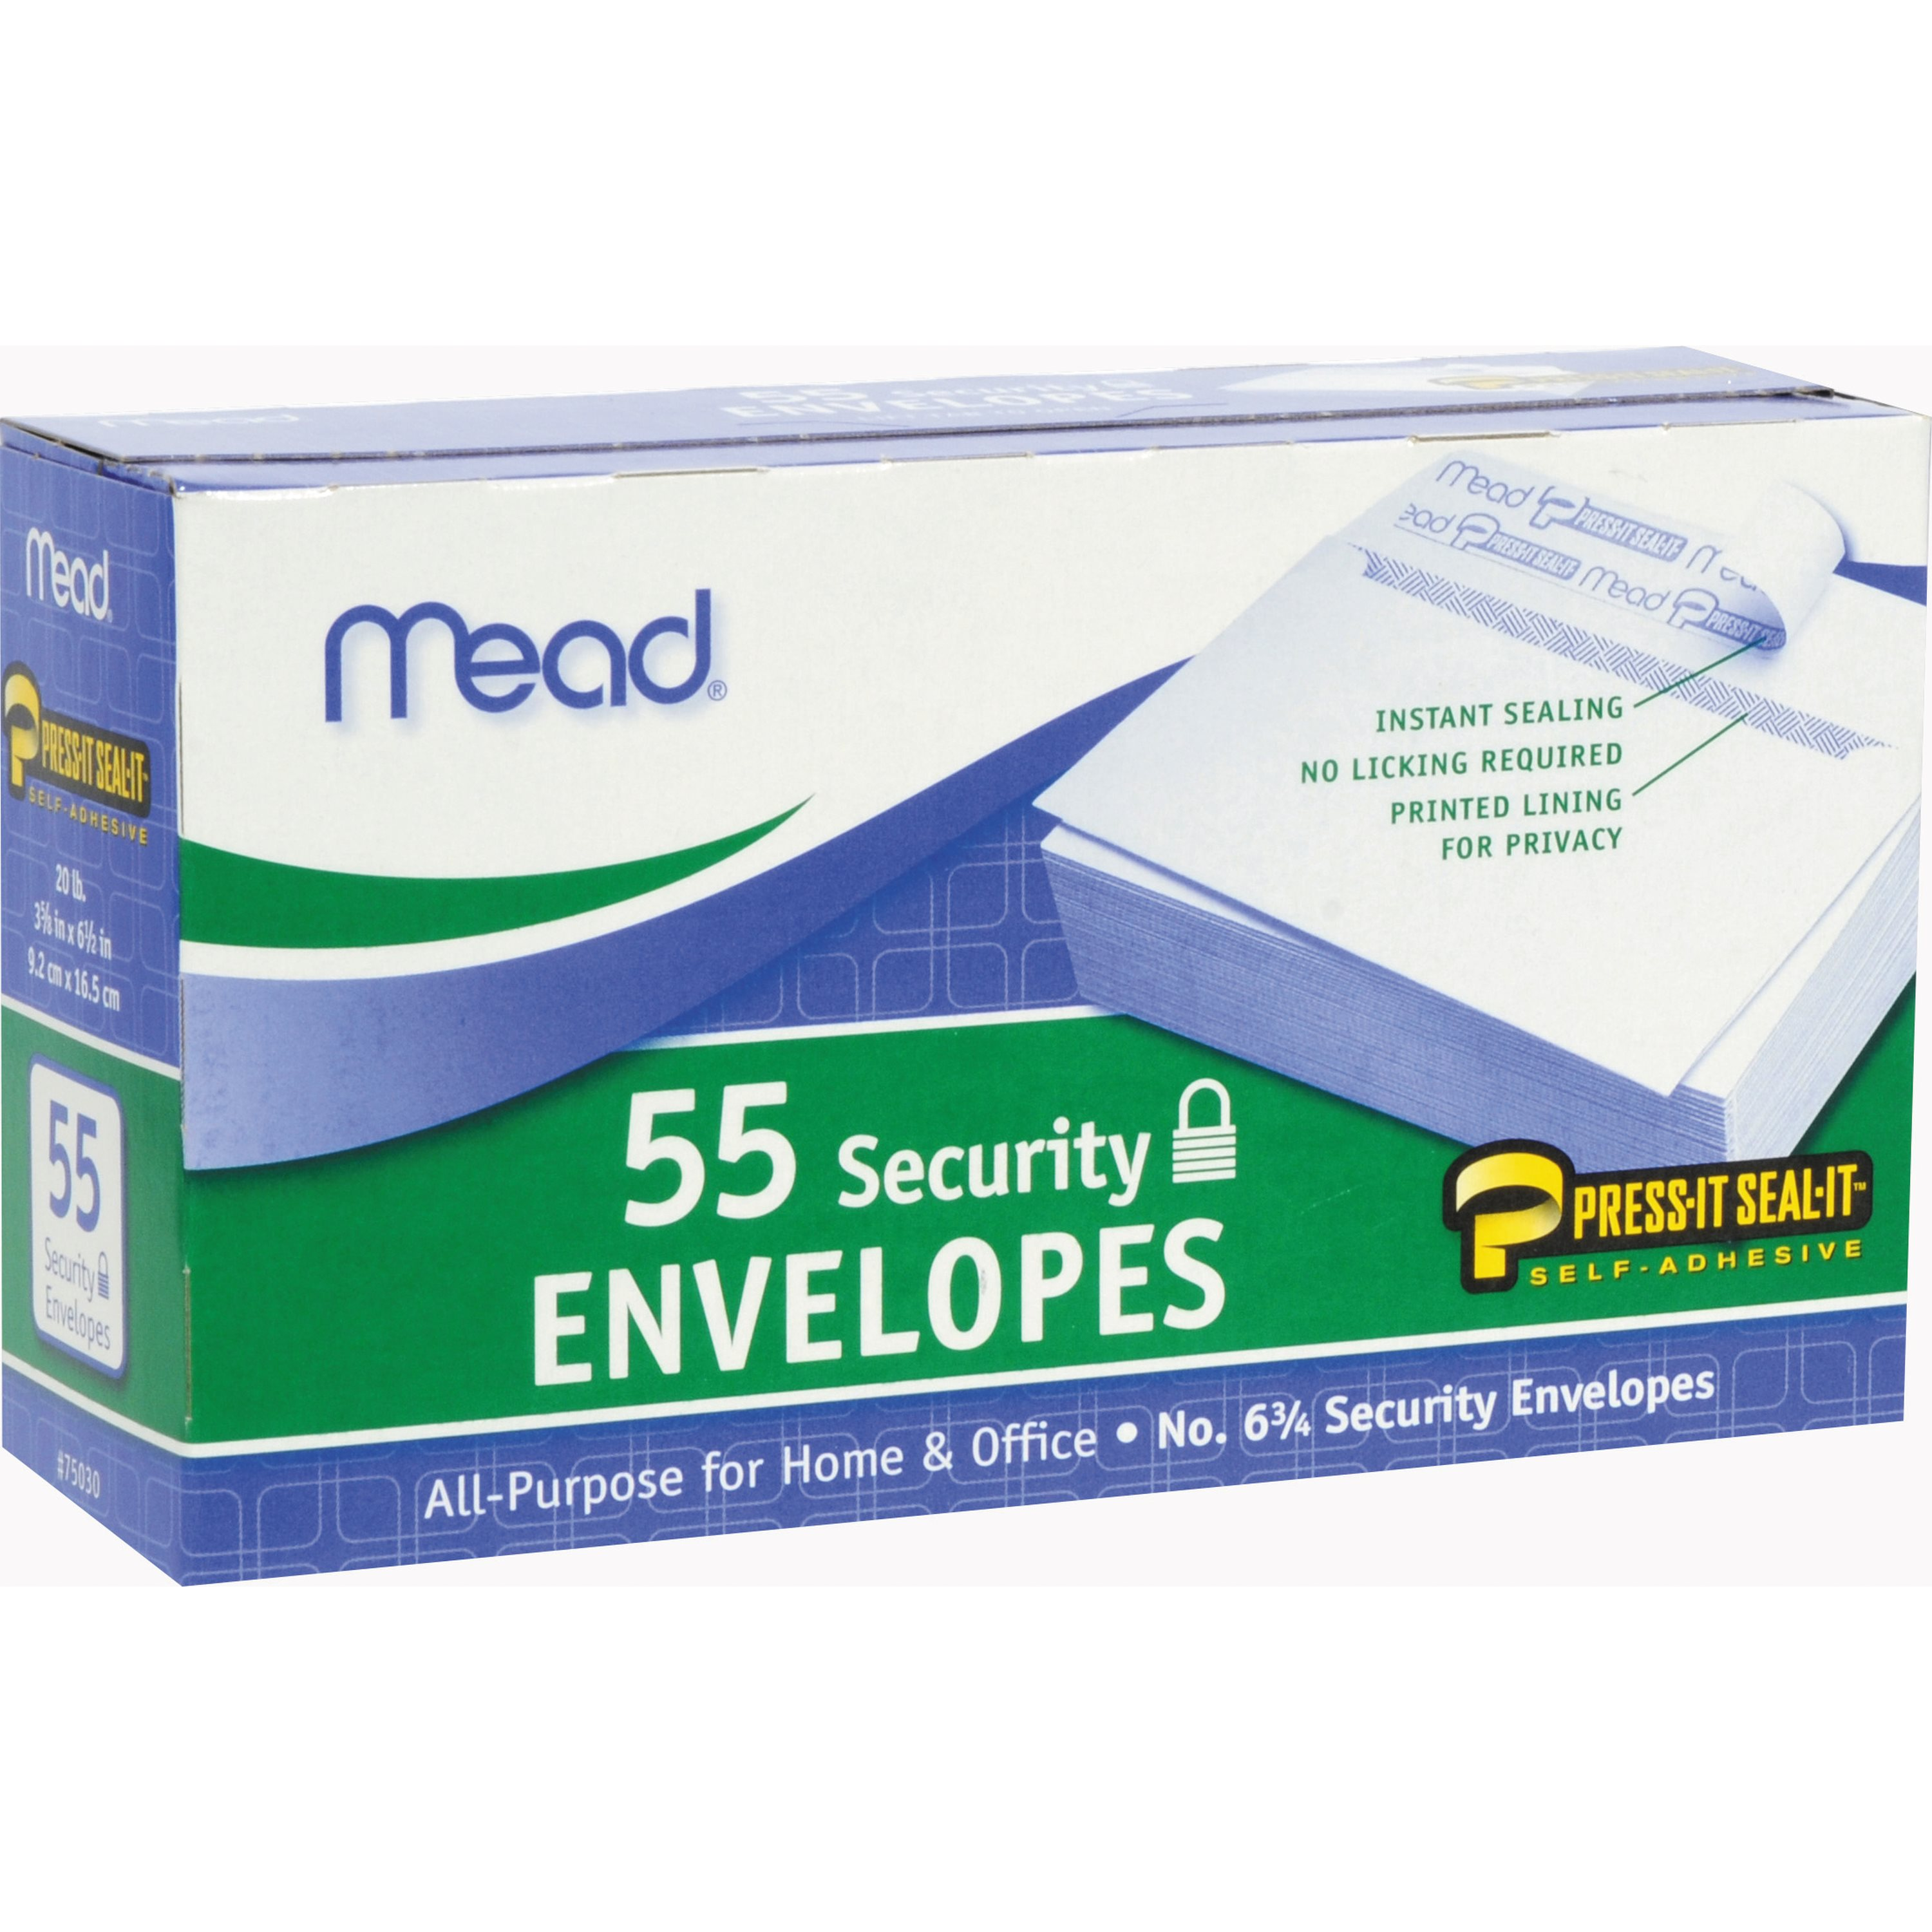 Mead Press-It Seal-It #6 3/4 Security Envelopes White #6 3/4 (75030)